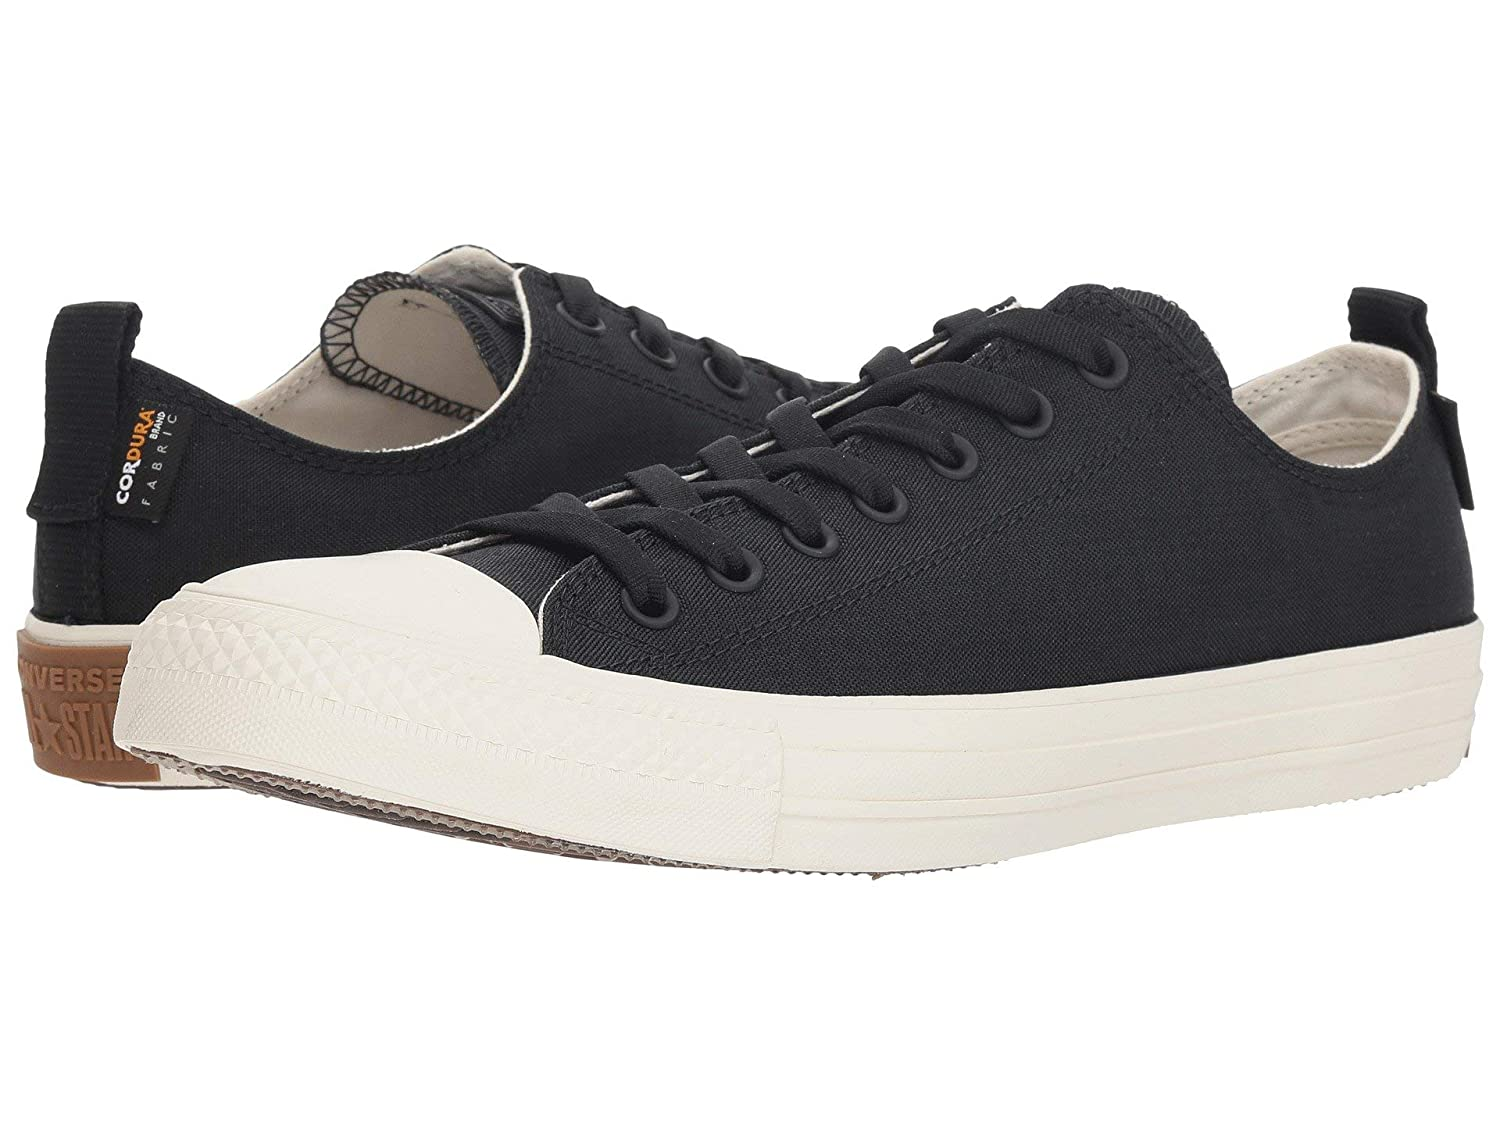 best loved a3050 3d7d3 Amazon.com   Converse Chuck Taylor All Star Cordura Ox Sneaker, Adult  Unisex,   Fashion Sneakers